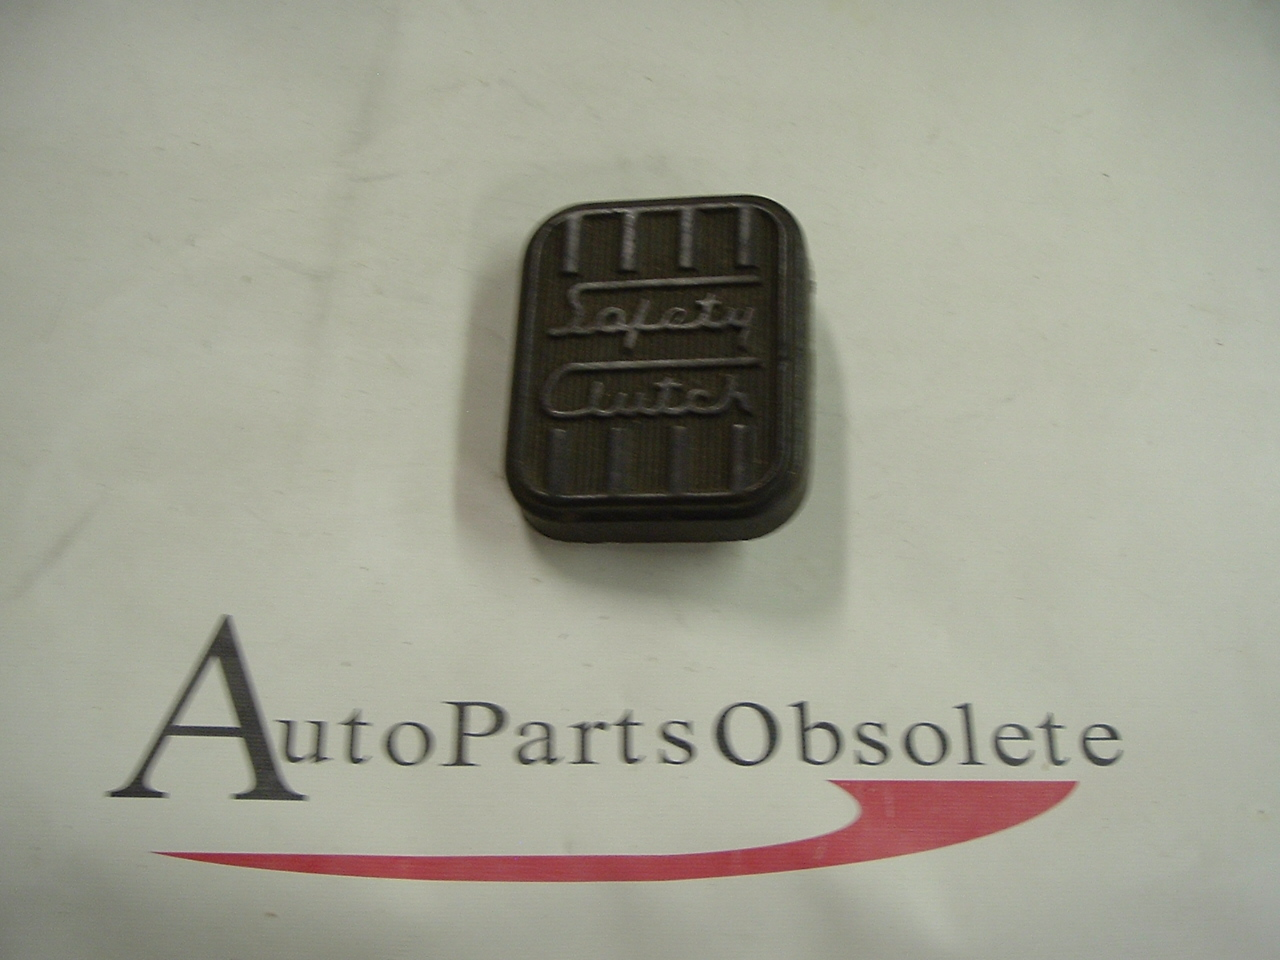 1942-1948 Dodge DeSoto and Chrysler Safety Clutch Pedal for Fluid Drive Cars (a saftey clutch)